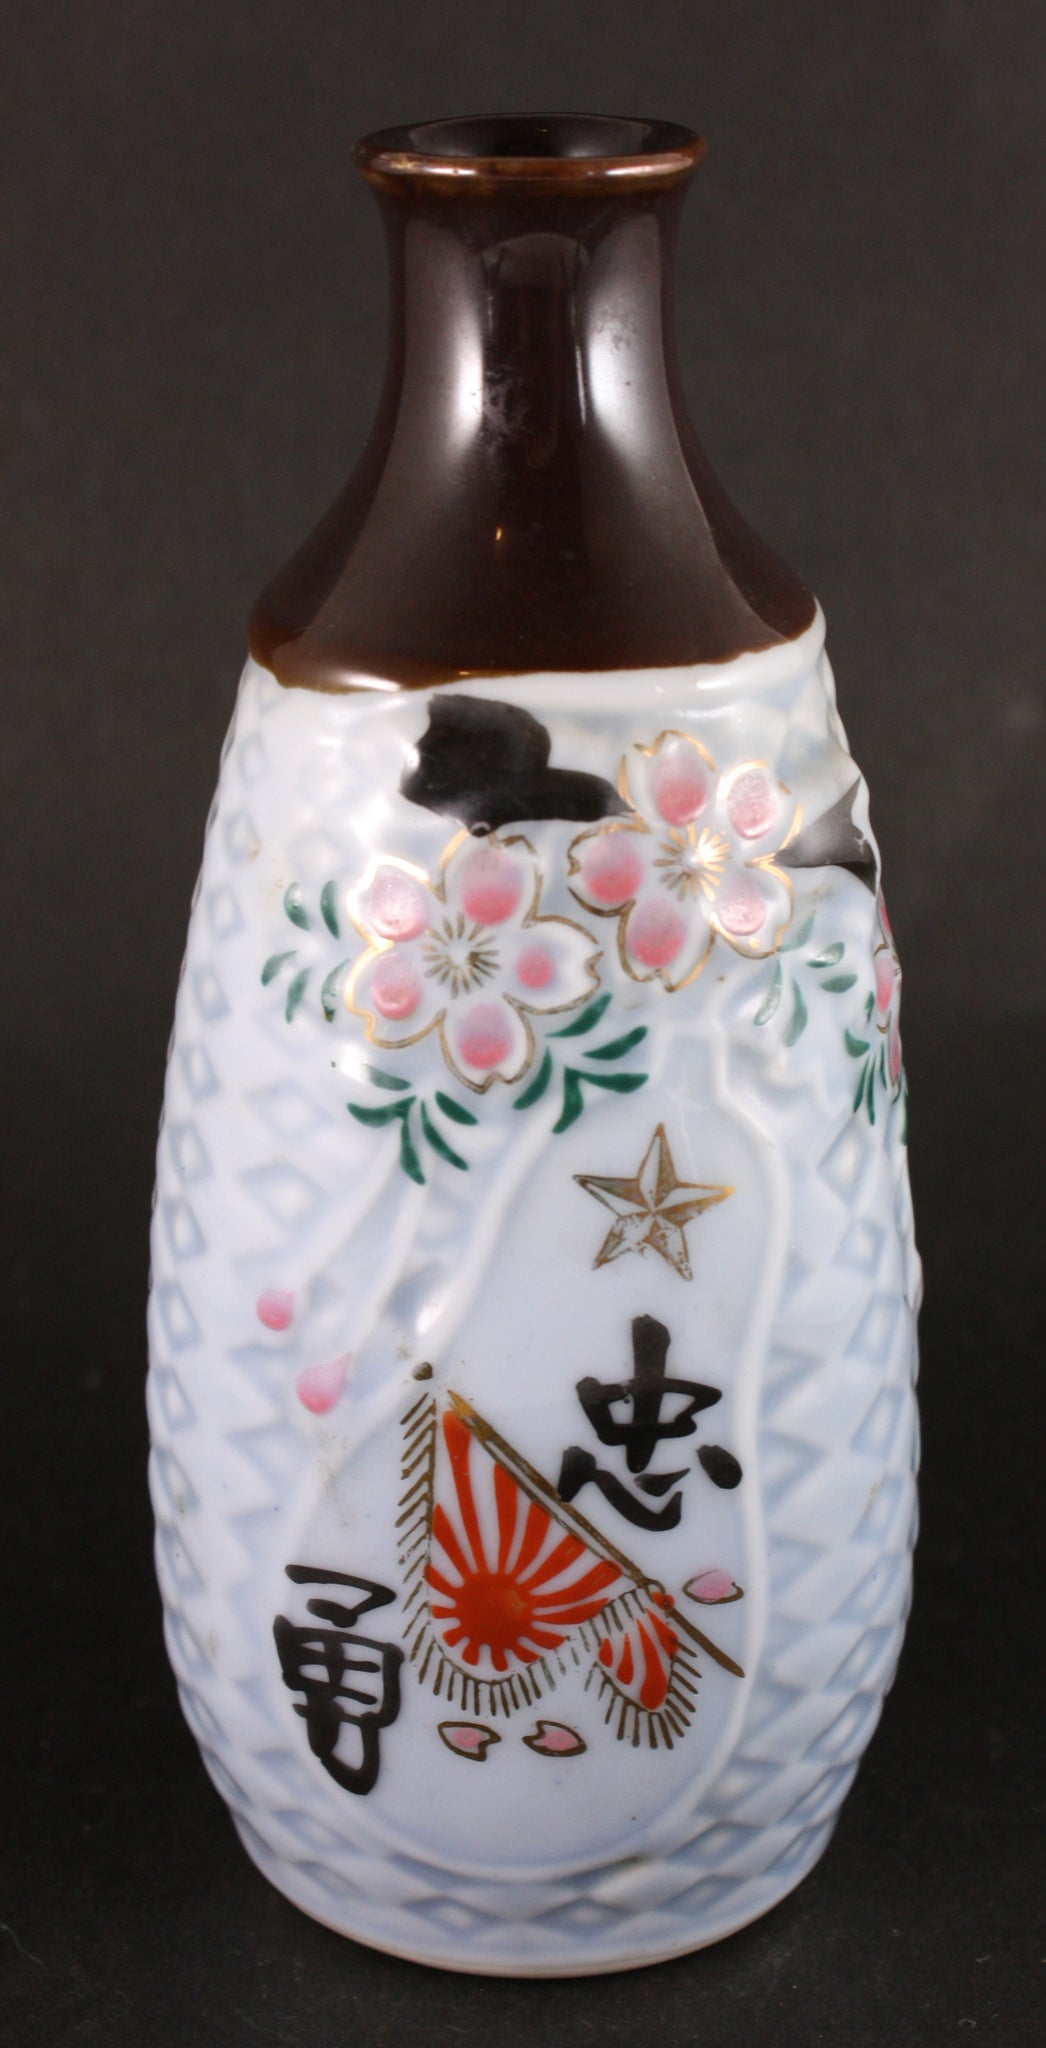 Antique Japanese Military China Incident Loyal and Bravery Army Sake Bottle